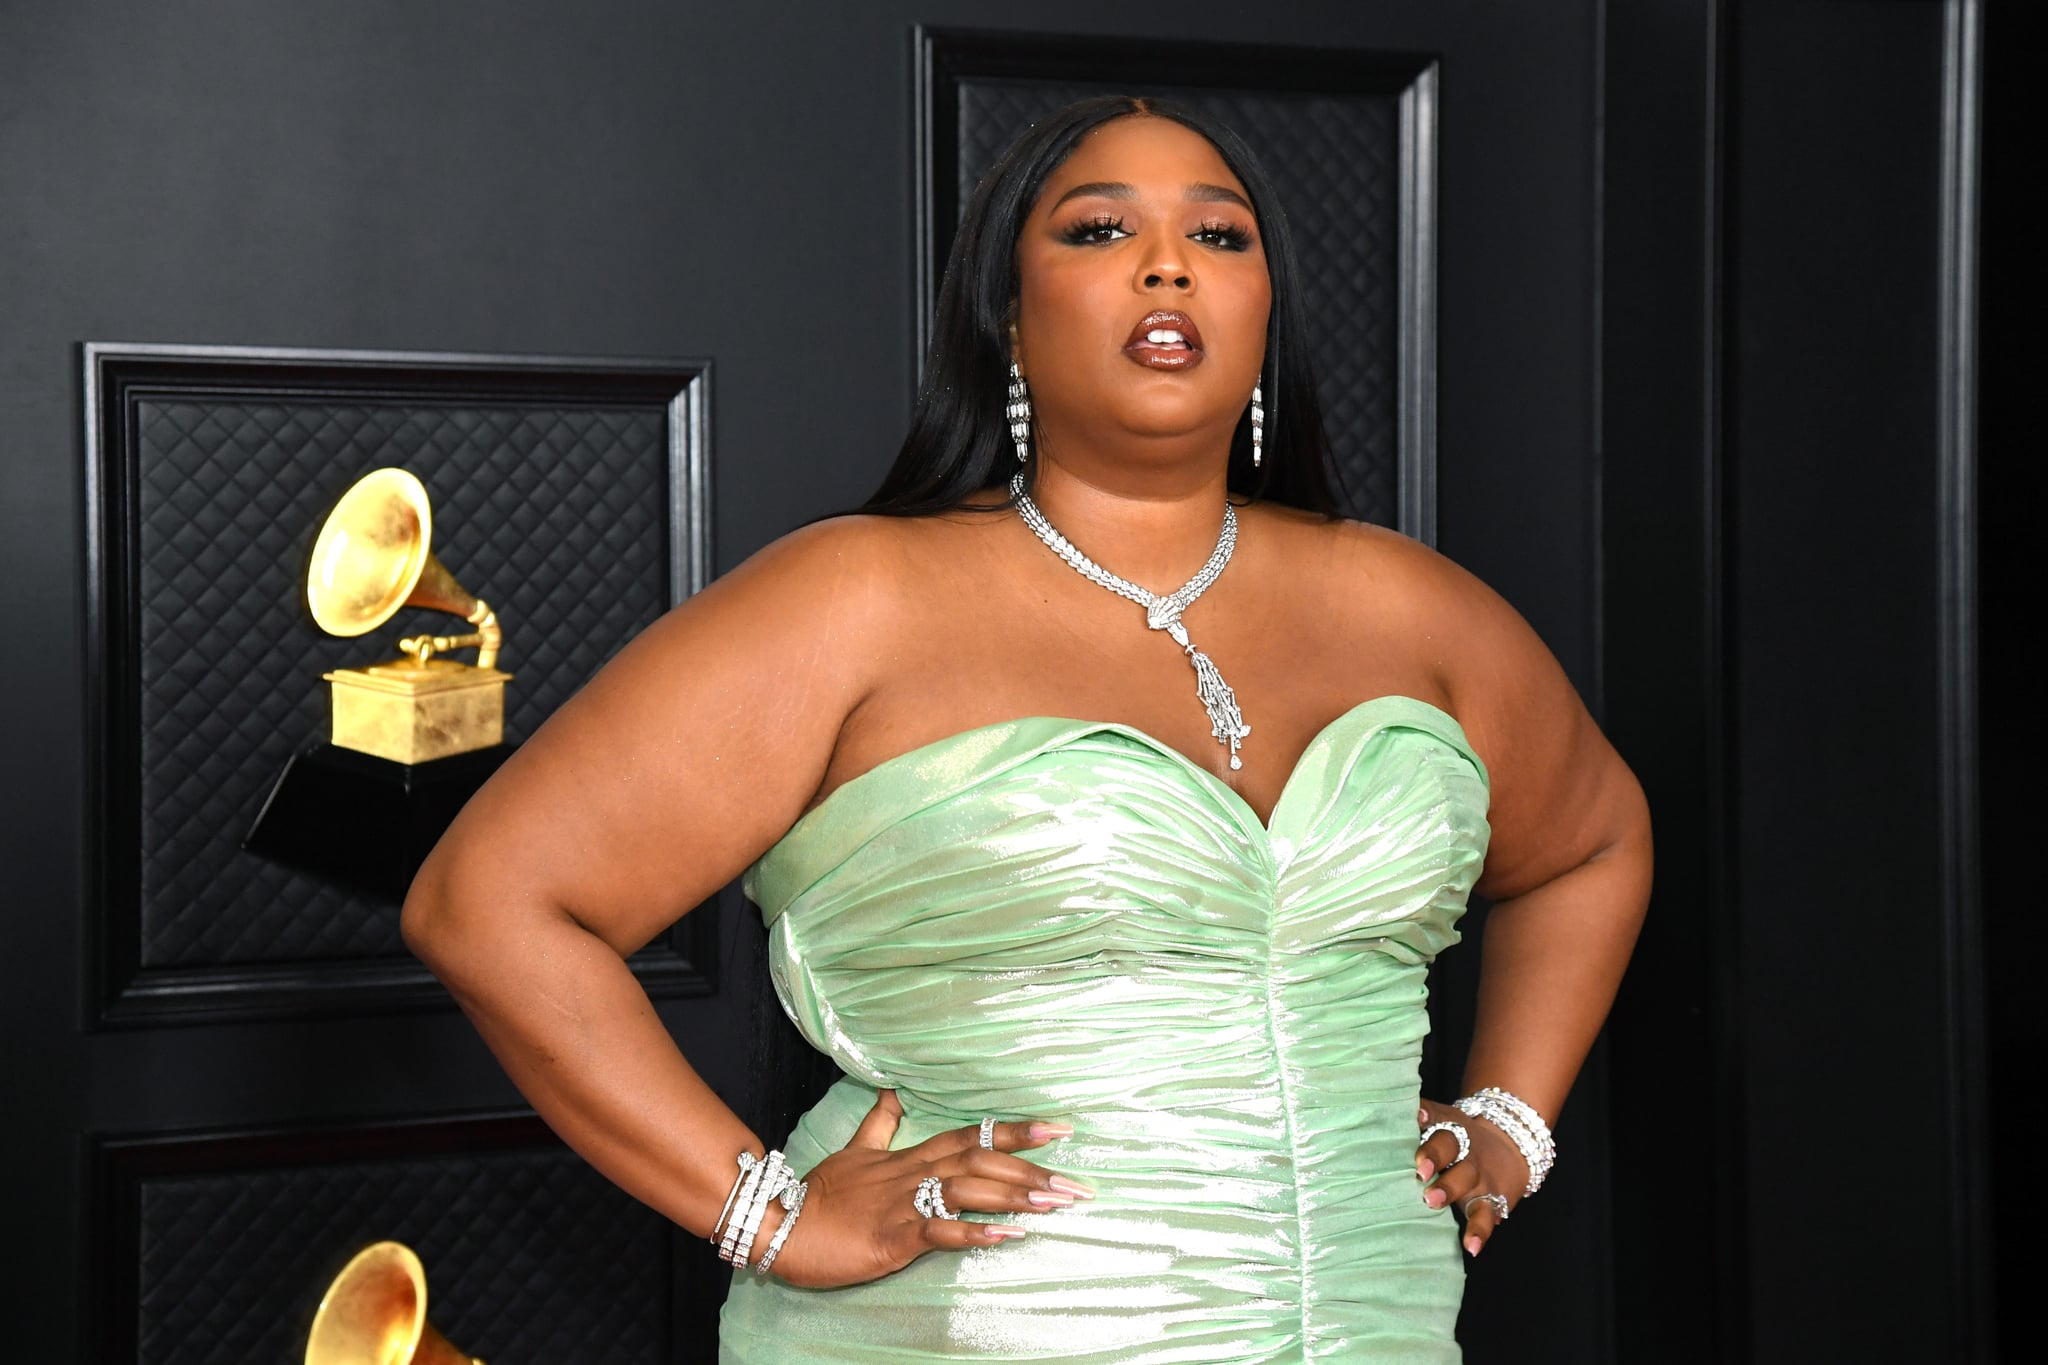 LOS ANGELES, CALIFORNIA - MARCH 14: Lizzo attends the 63rd Annual GRAMMY Awards at Los Angeles Convention Center on March 14, 2021 in Los Angeles, California. (Photo by Kevin Mazur/Getty Images for The Recording Academy )